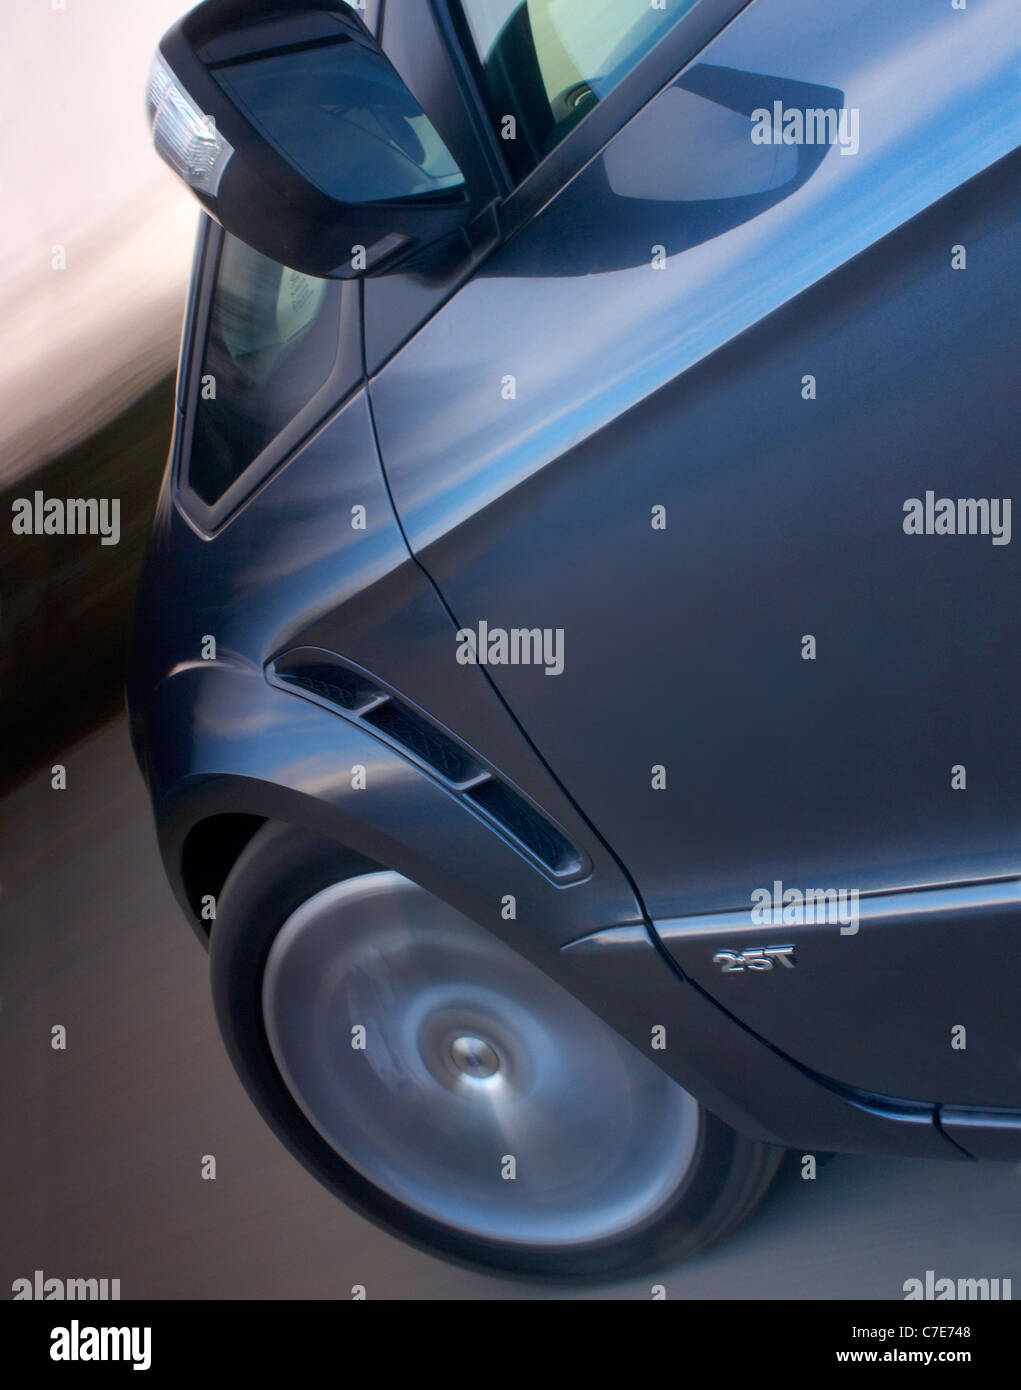 Ford S-max 2.5T front 3/4 - Stock Image